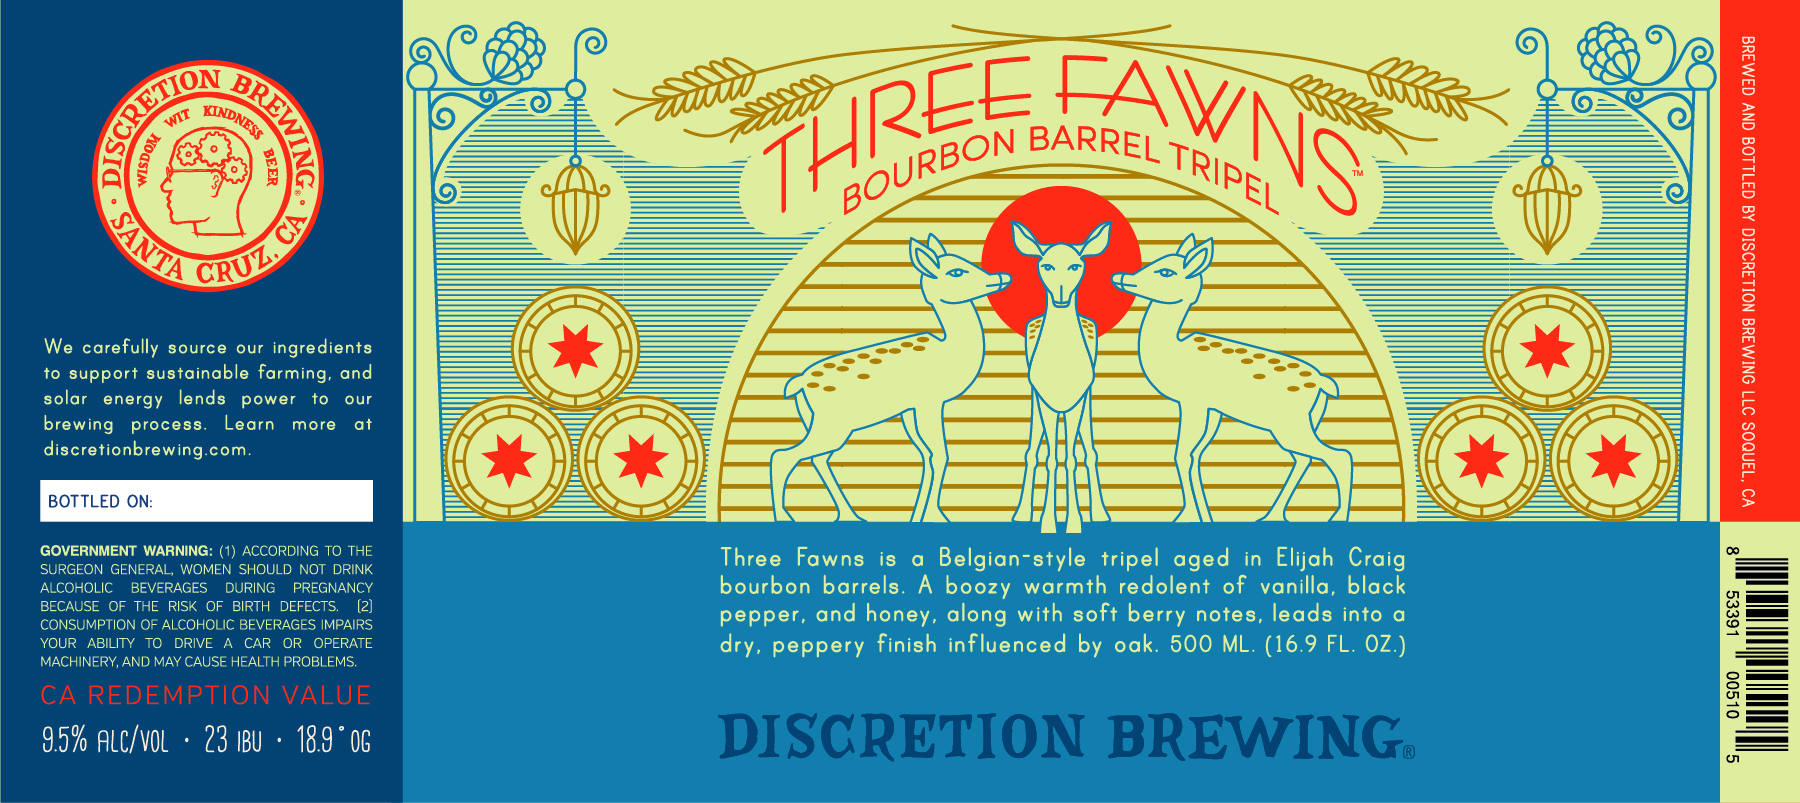 Three Fawns Bourbon Barrel Tripel